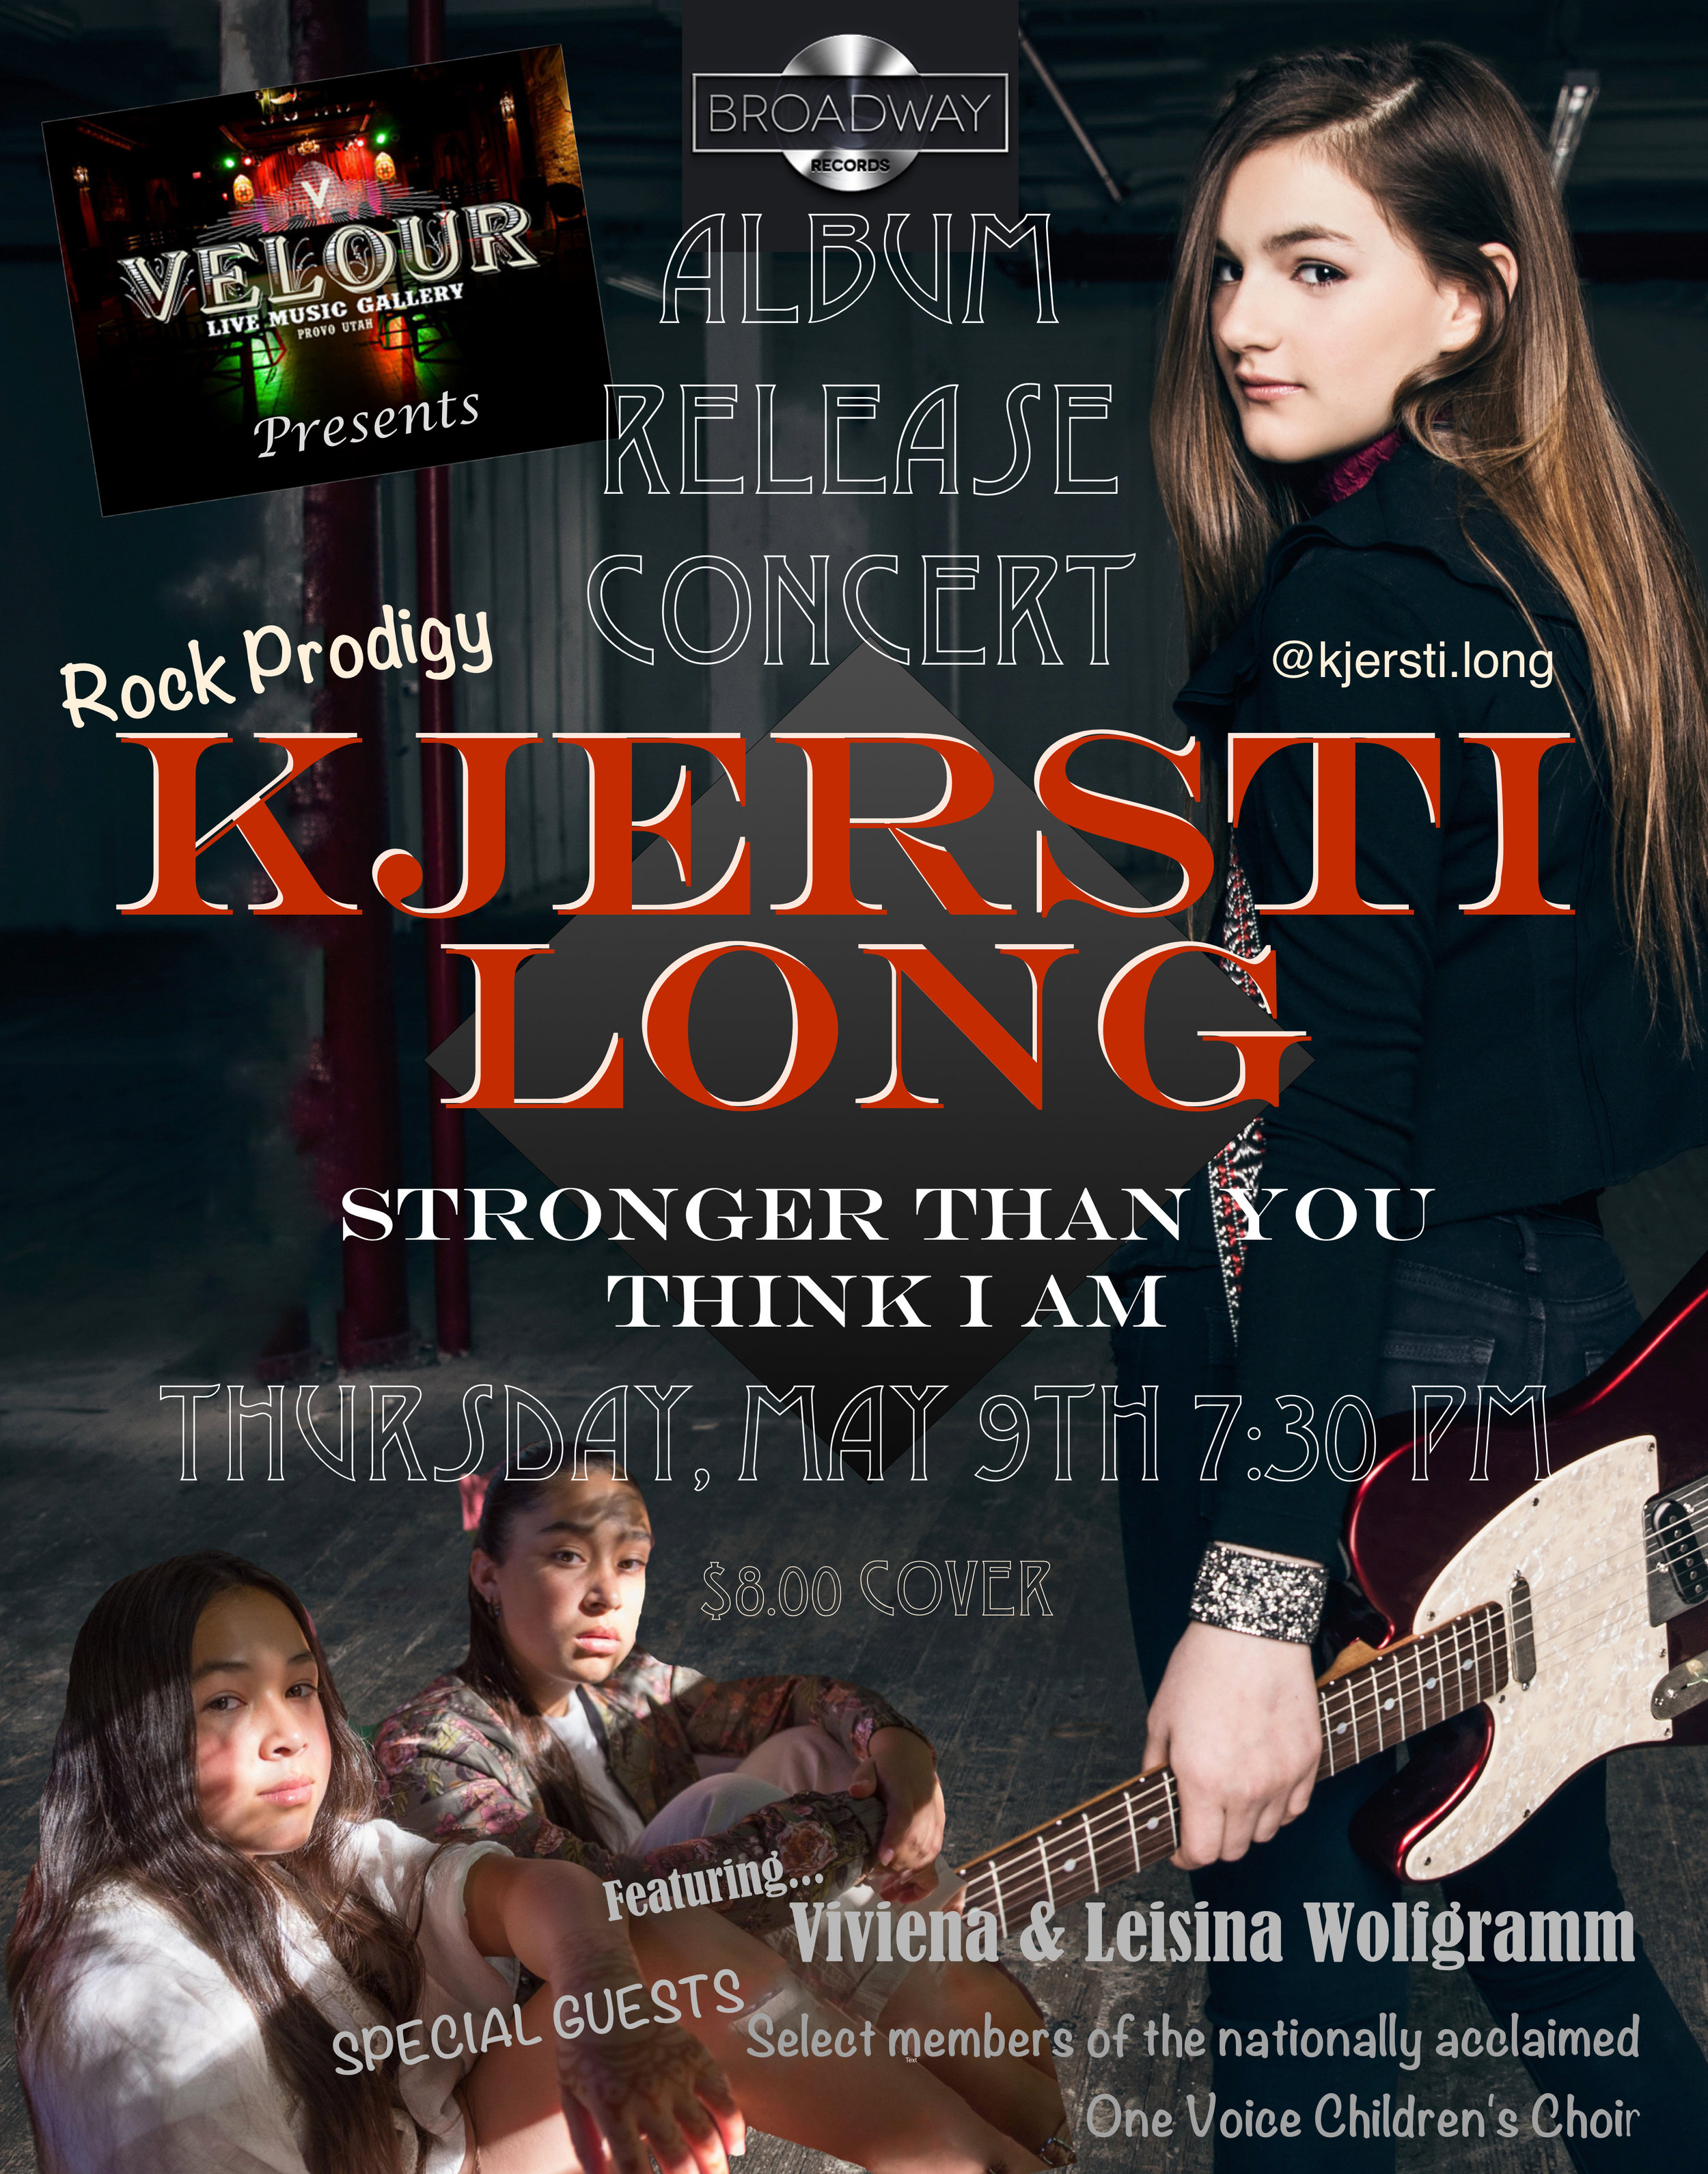 Kjersti Long Poster Velour Approved for Use 5.1.19.jpg